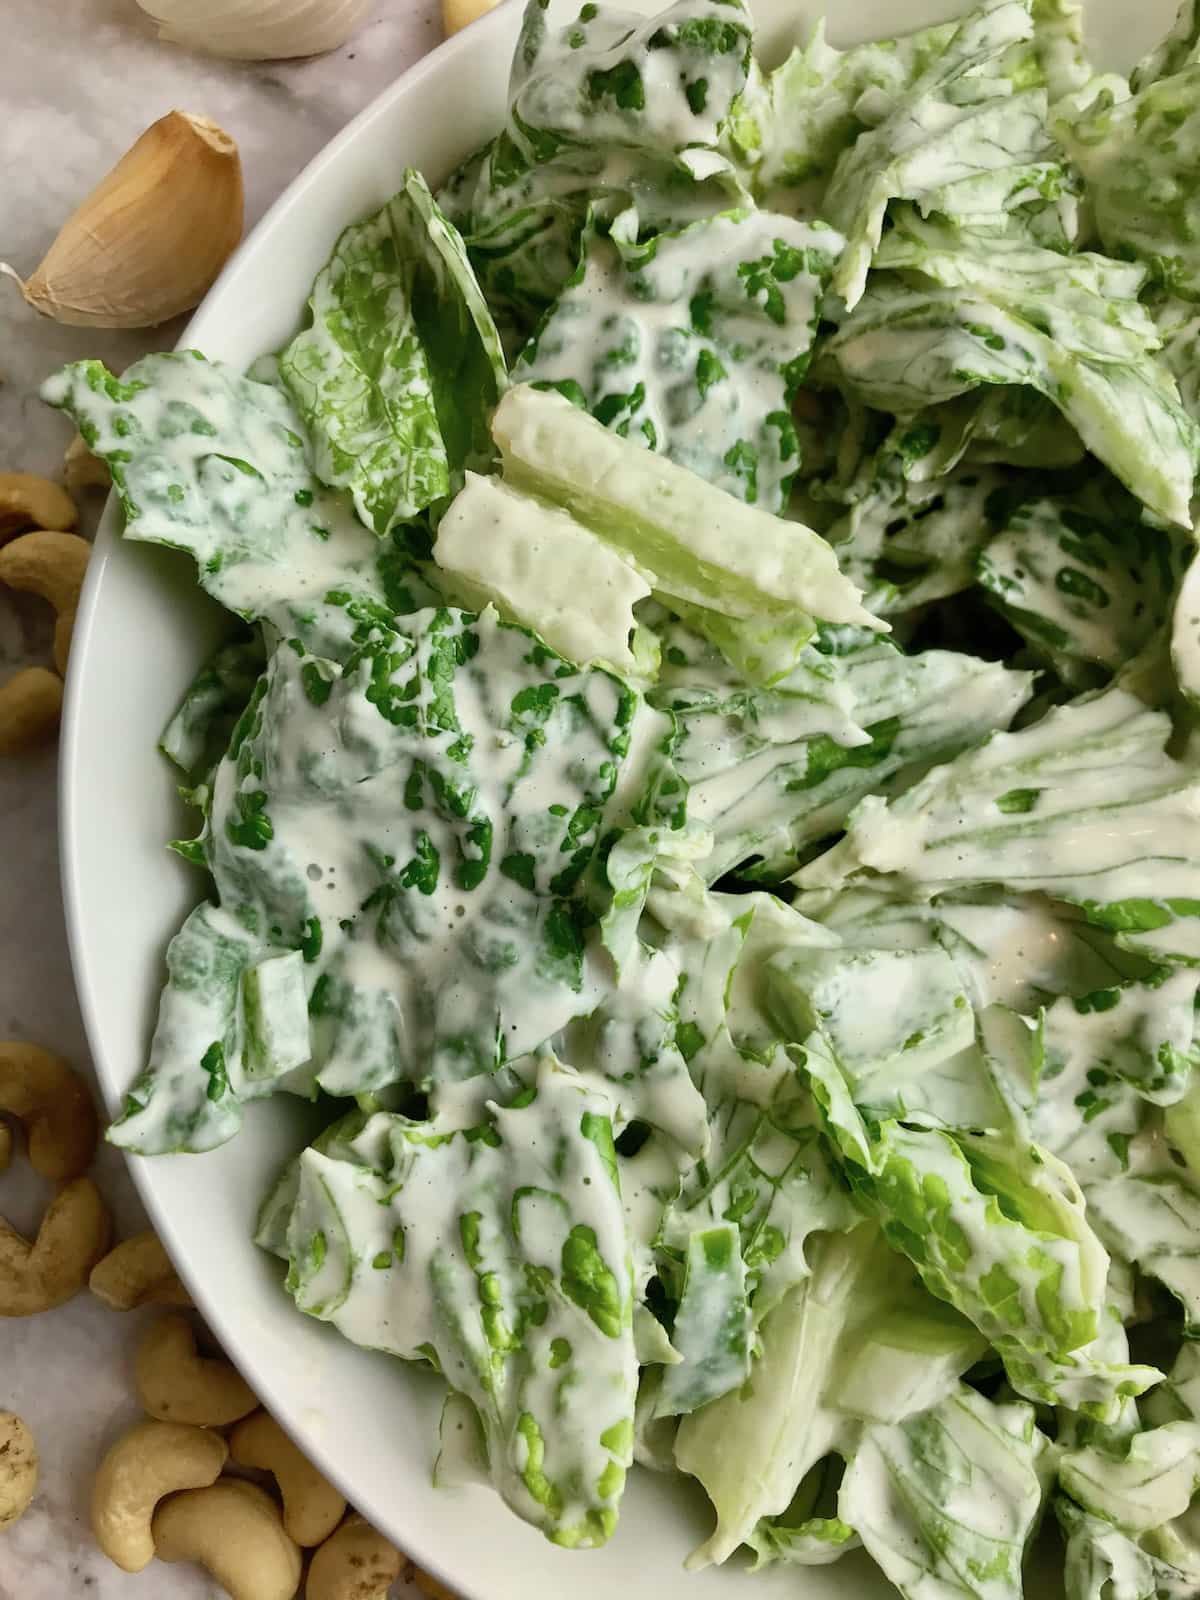 Close up of half a bowl of Romaine lettuce covered in white Caesar dressing.